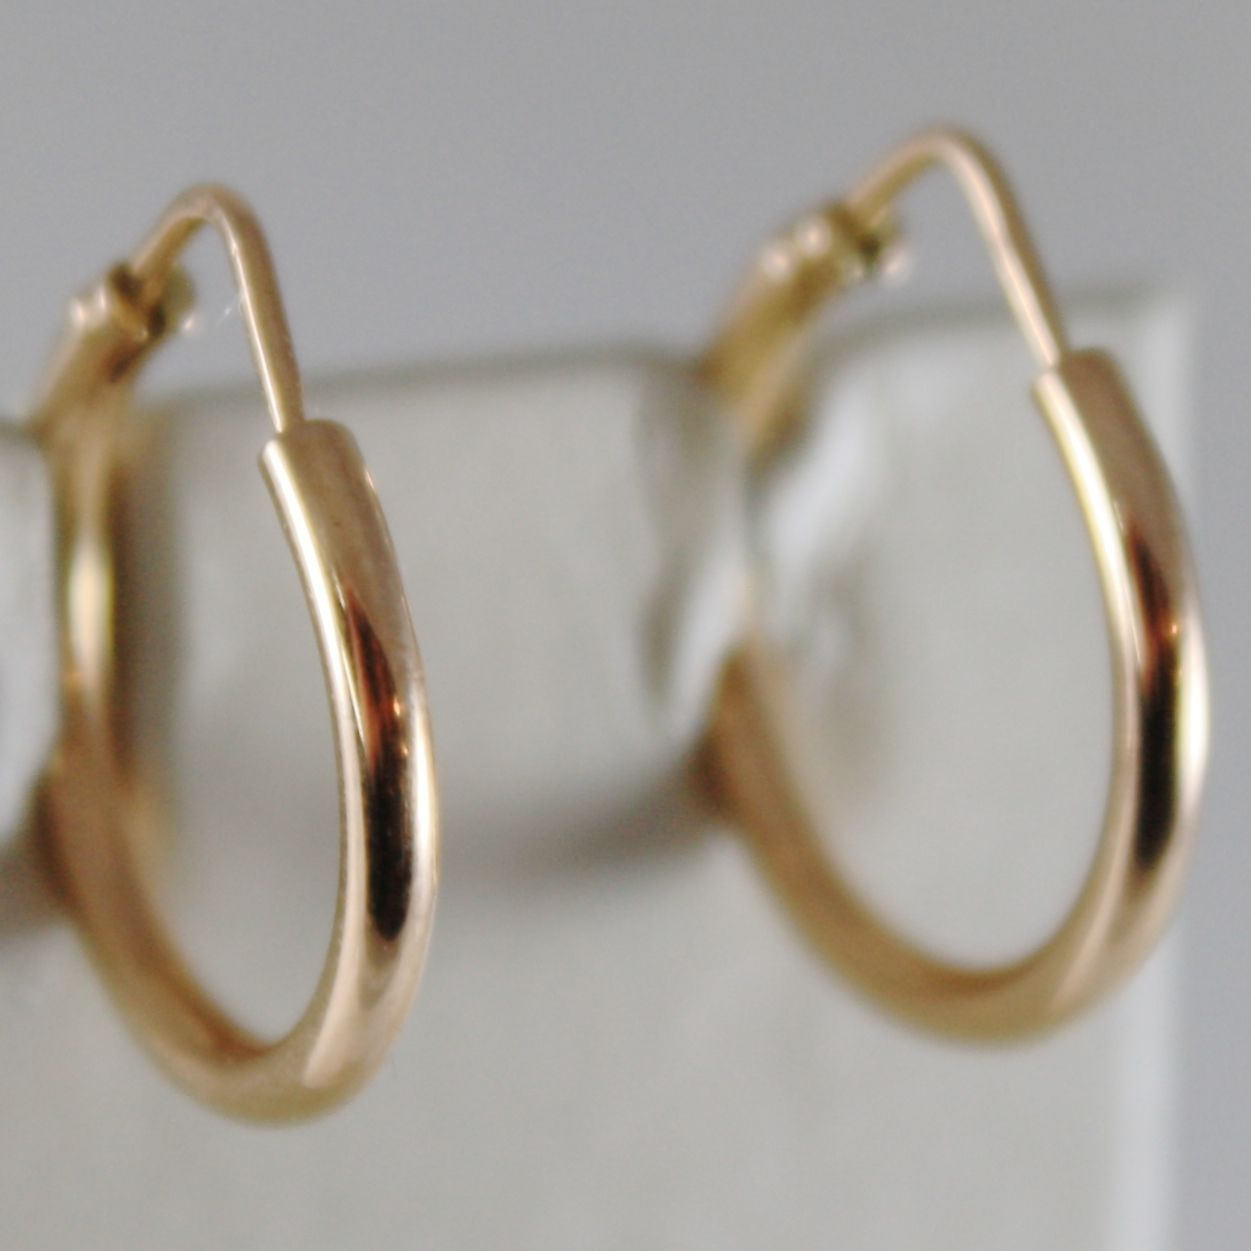 18K ROSE GOLD EARRINGS LITTLE CIRCLE HOOP 18 MM 0.71 IN DIAMETER MADE IN ITALY